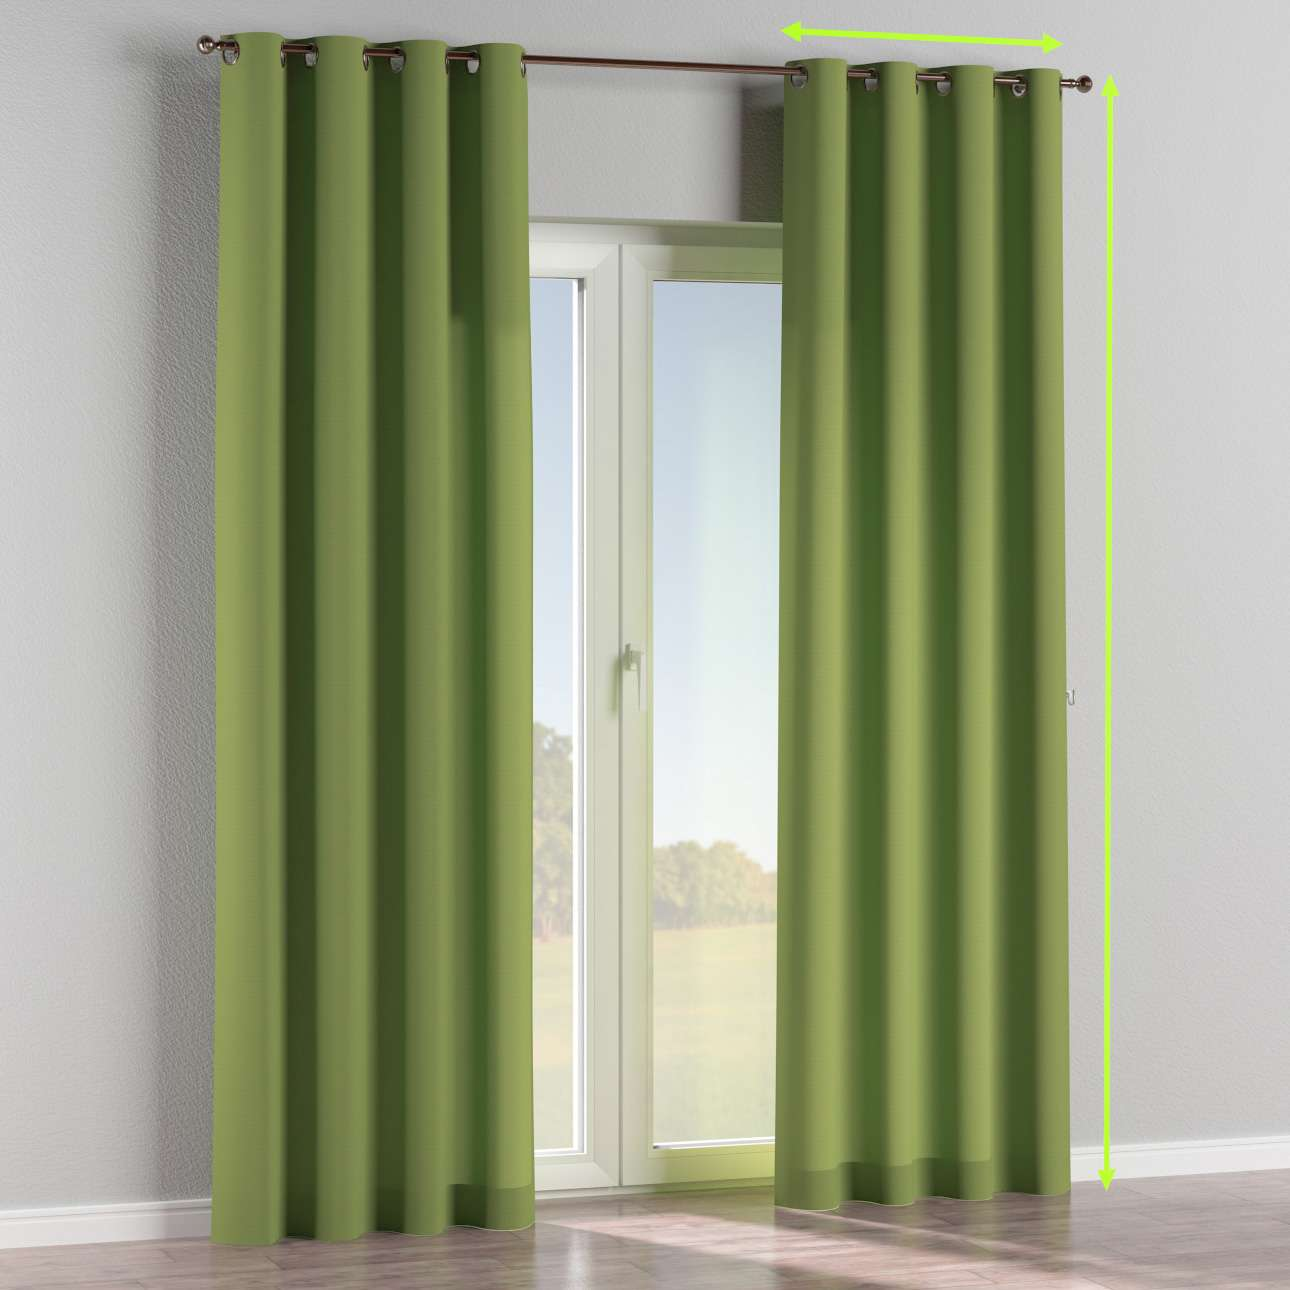 Eyelet curtains in collection Panama Cotton, fabric: 702-27